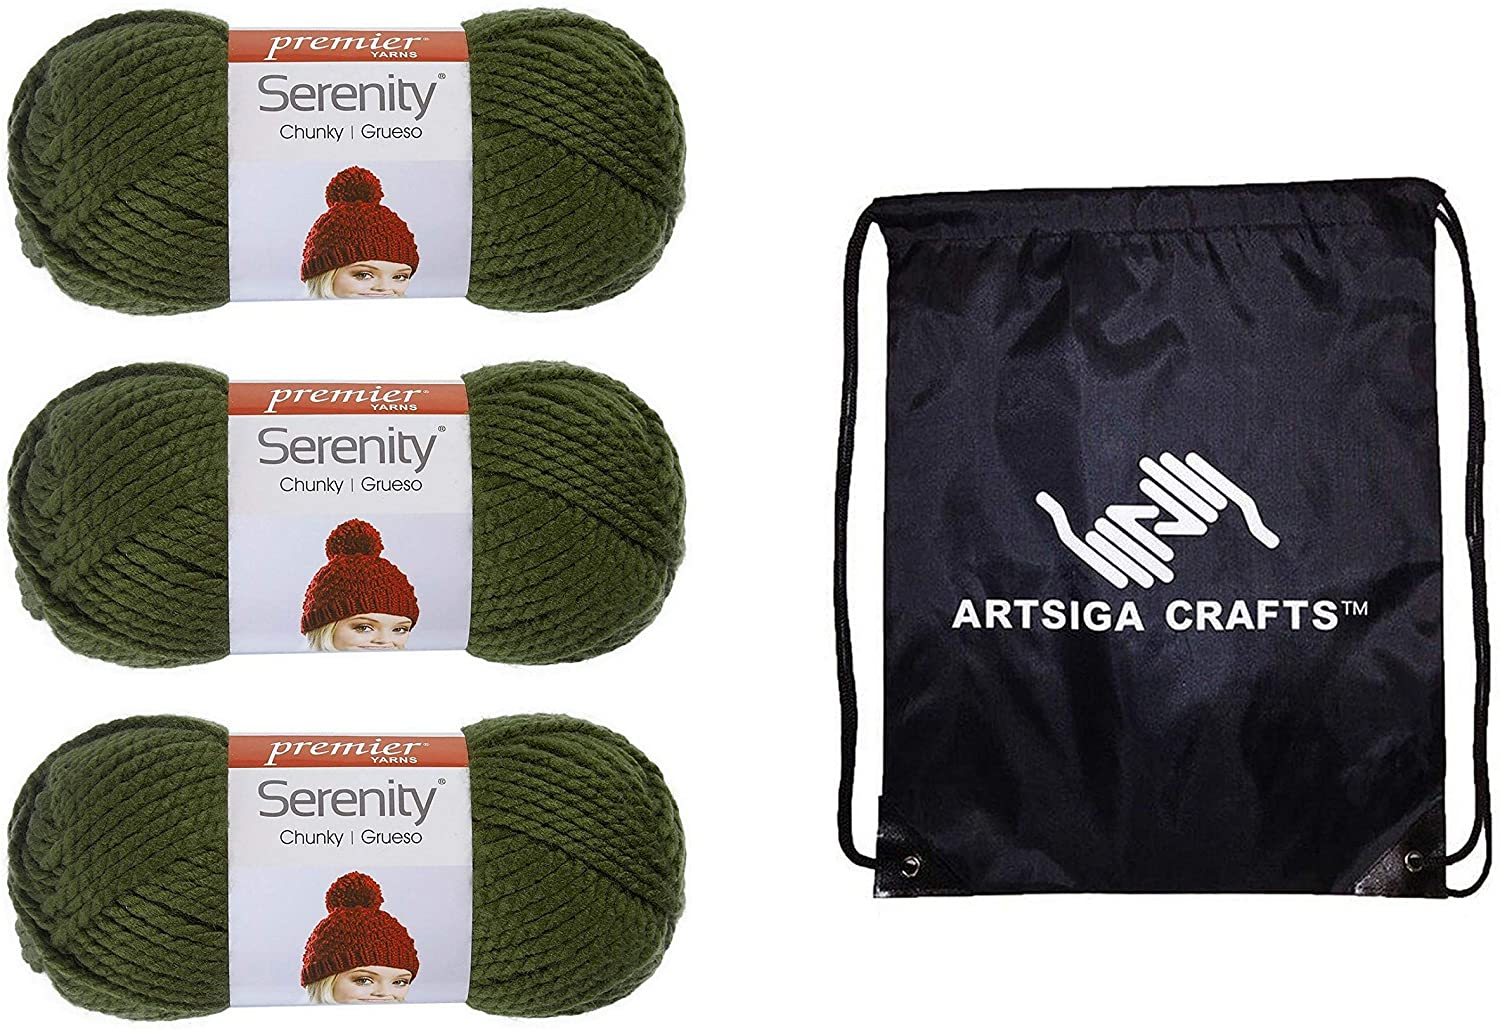 Premier Knitting Yarn Serenity Chunky Solid After Dark 3-Skein Factory Pack (Same Dye Lot) DN700-35 Bundle with 1 Artsiga Crafts Project Bag